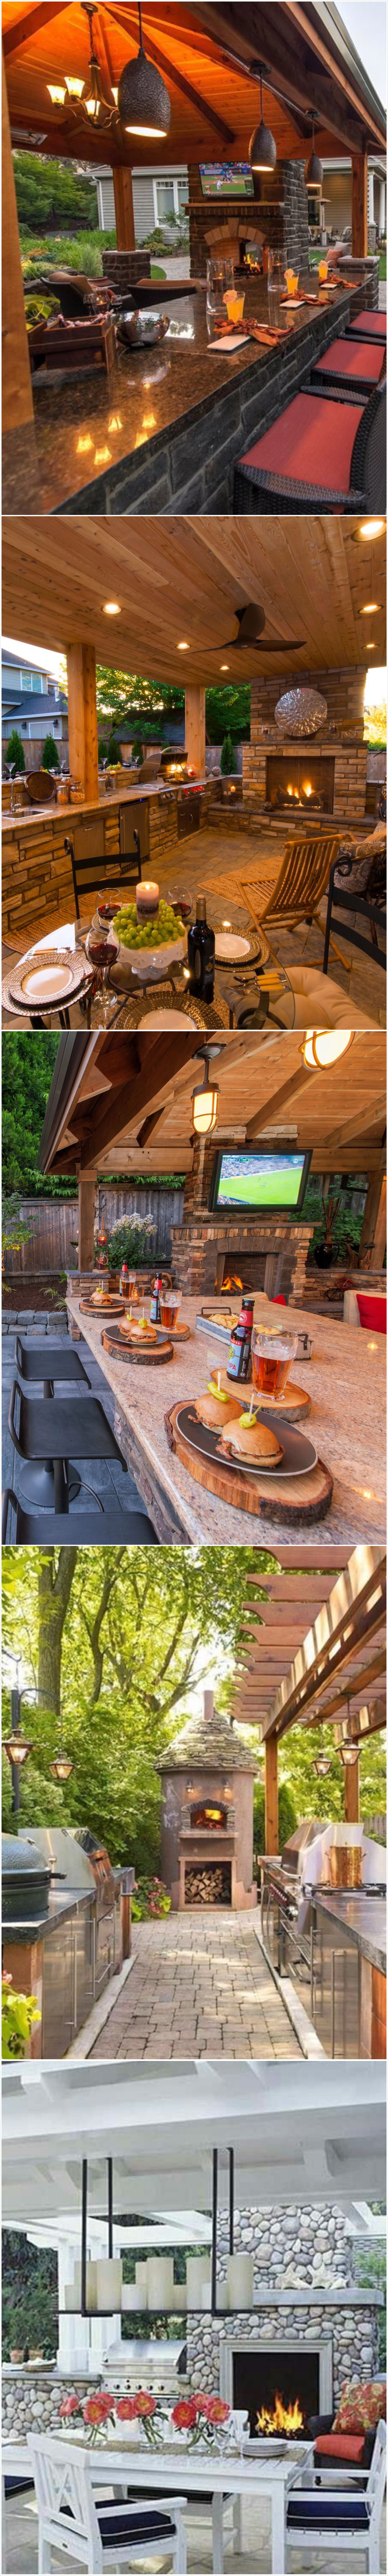 31 Gorgeous Outdoor Living Spaces | Backyard, Outdoor living and Patios